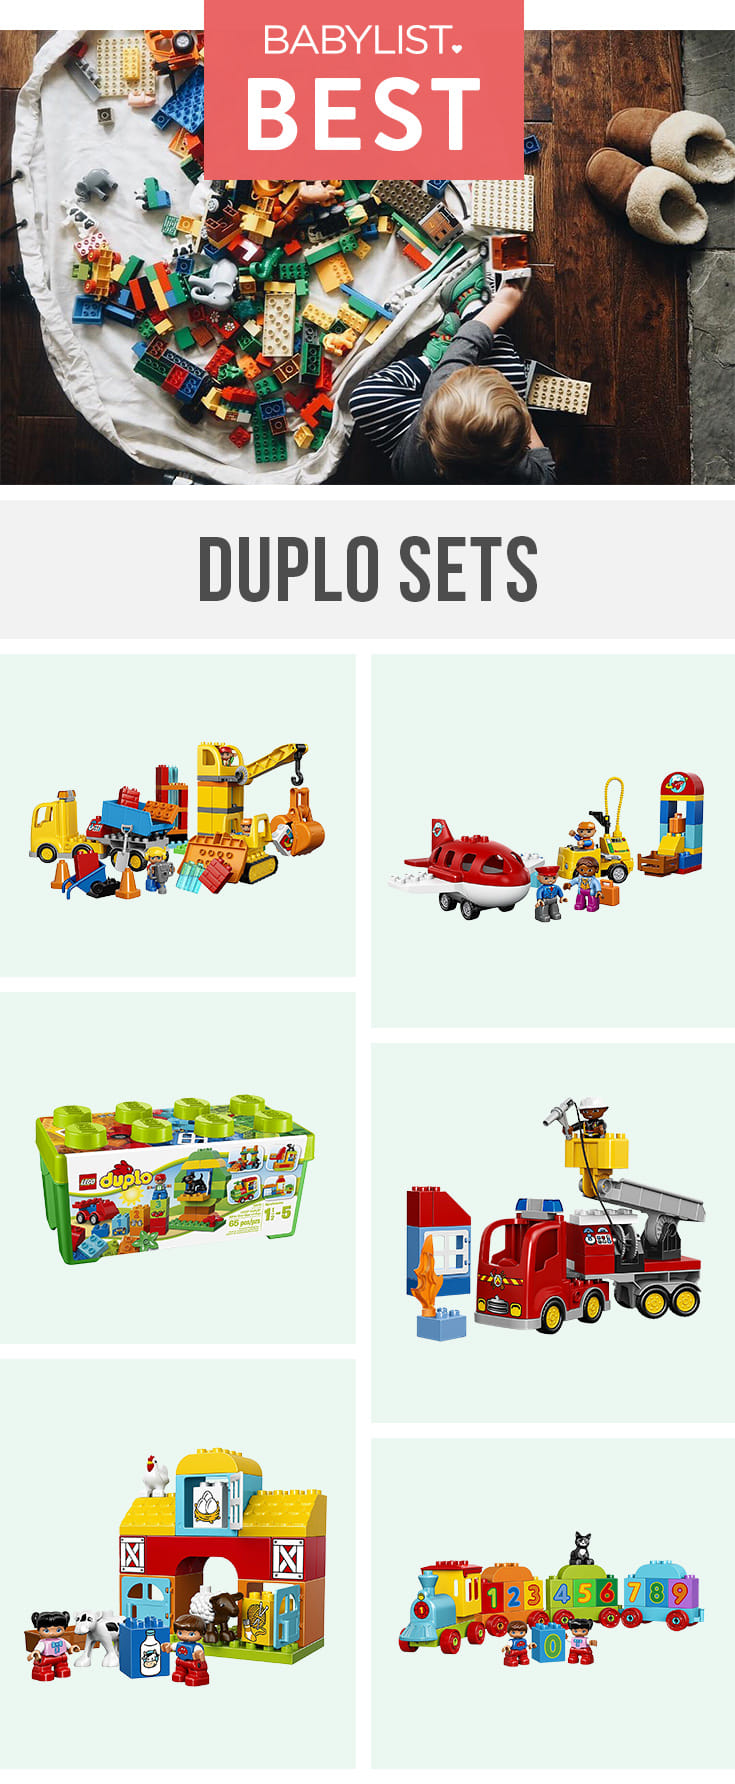 These junior versions of the ever-popular Lego will have your toddler creating all kinds of fun worlds.